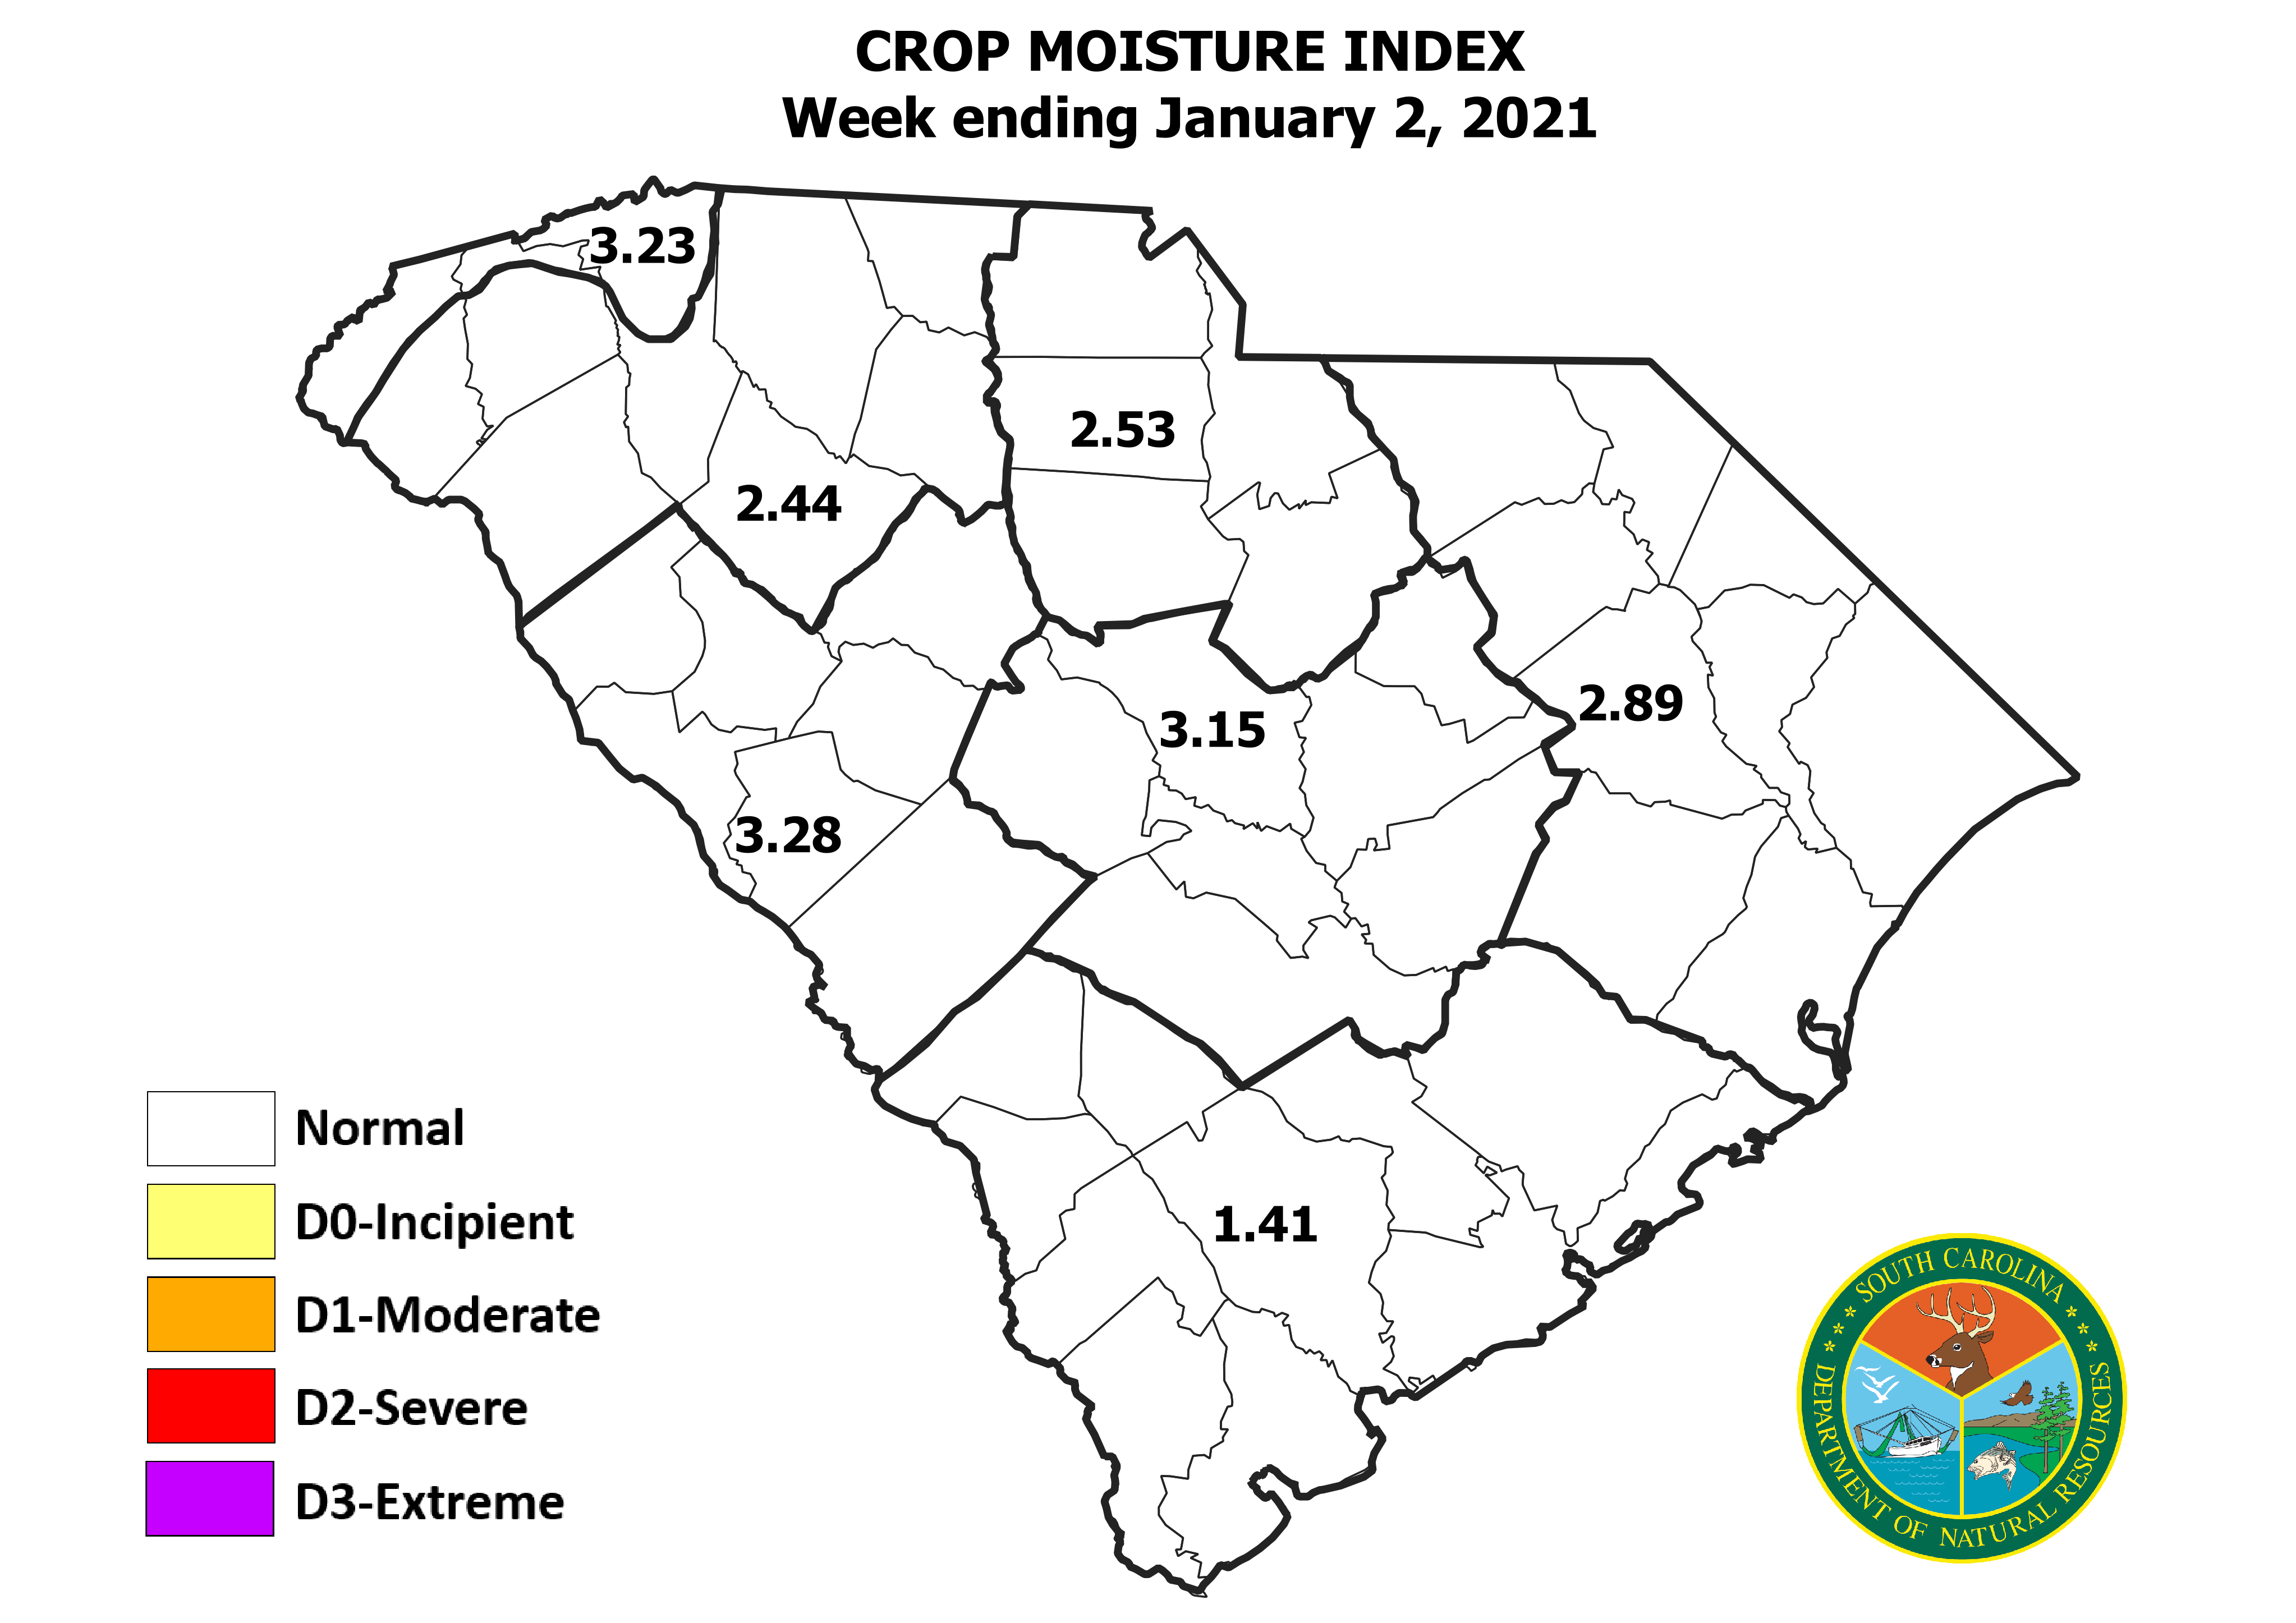 Thumbnail of Crop Moisture Index map.